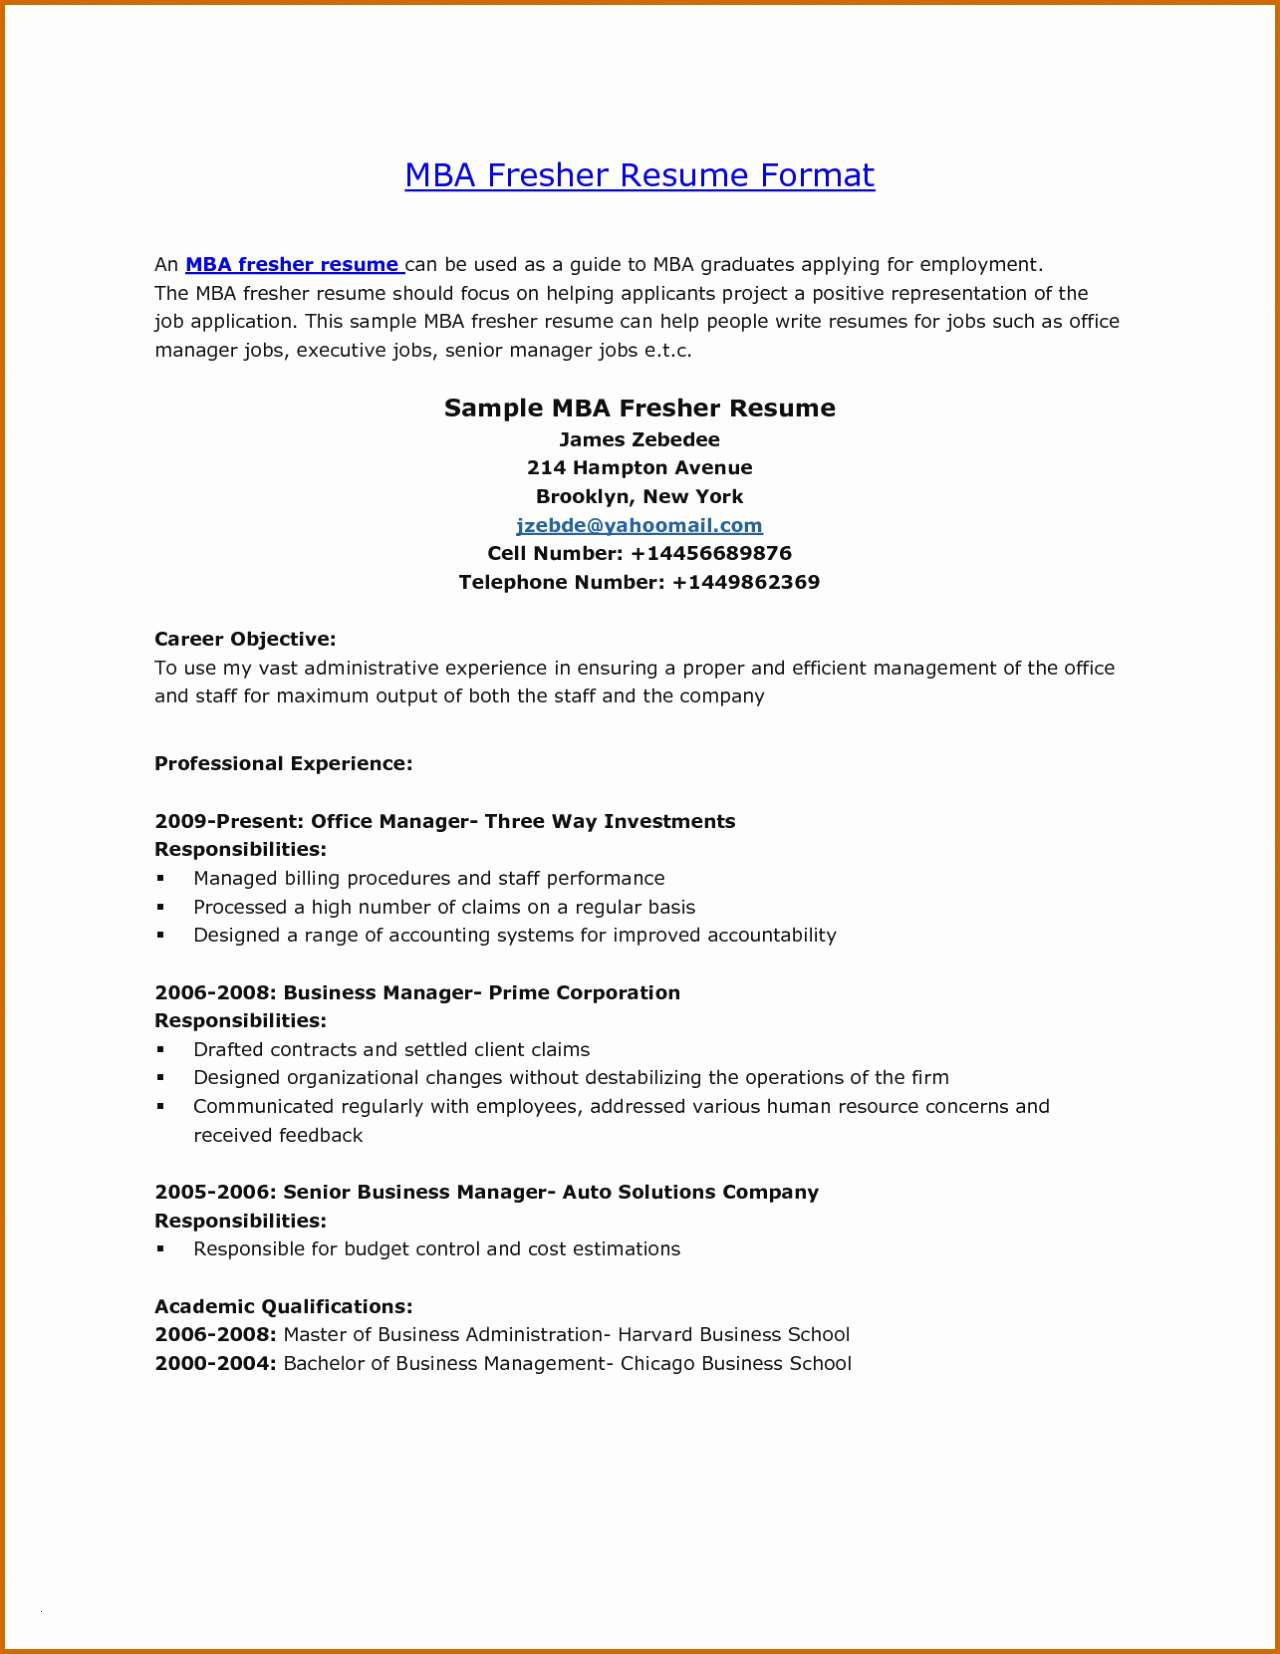 resume template for mba graduates example-Lebenslauf fice Neu Hr Resume Sample Best Mba Resume format Download now Wunderbar 10-f